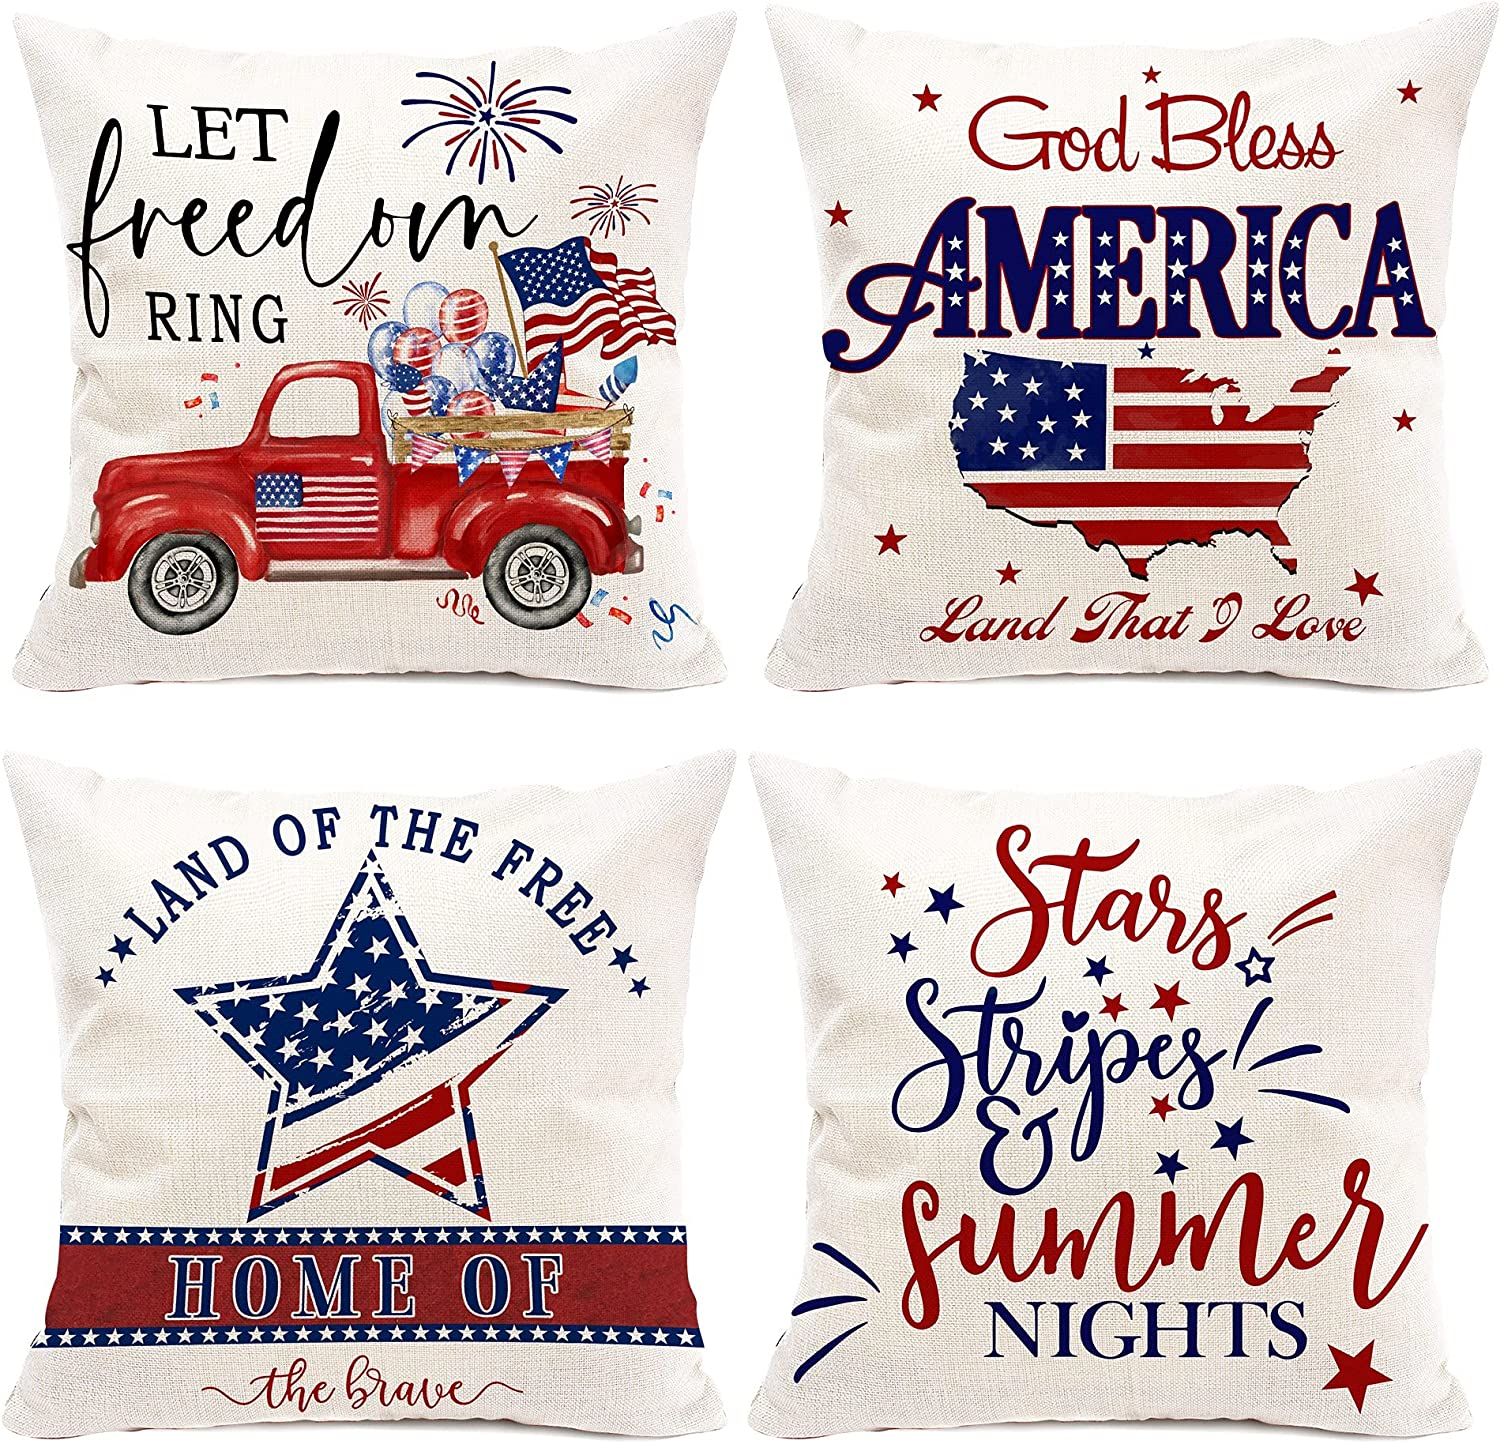 pinata 4th of July Decorations Patriotic Pillow Covers, Decorative Red Truck Throw Pillow Case Farmhouse Independence Day Square Cushion Cover for Sofa God Bless America Pillows 18x18 Inch Set of 4